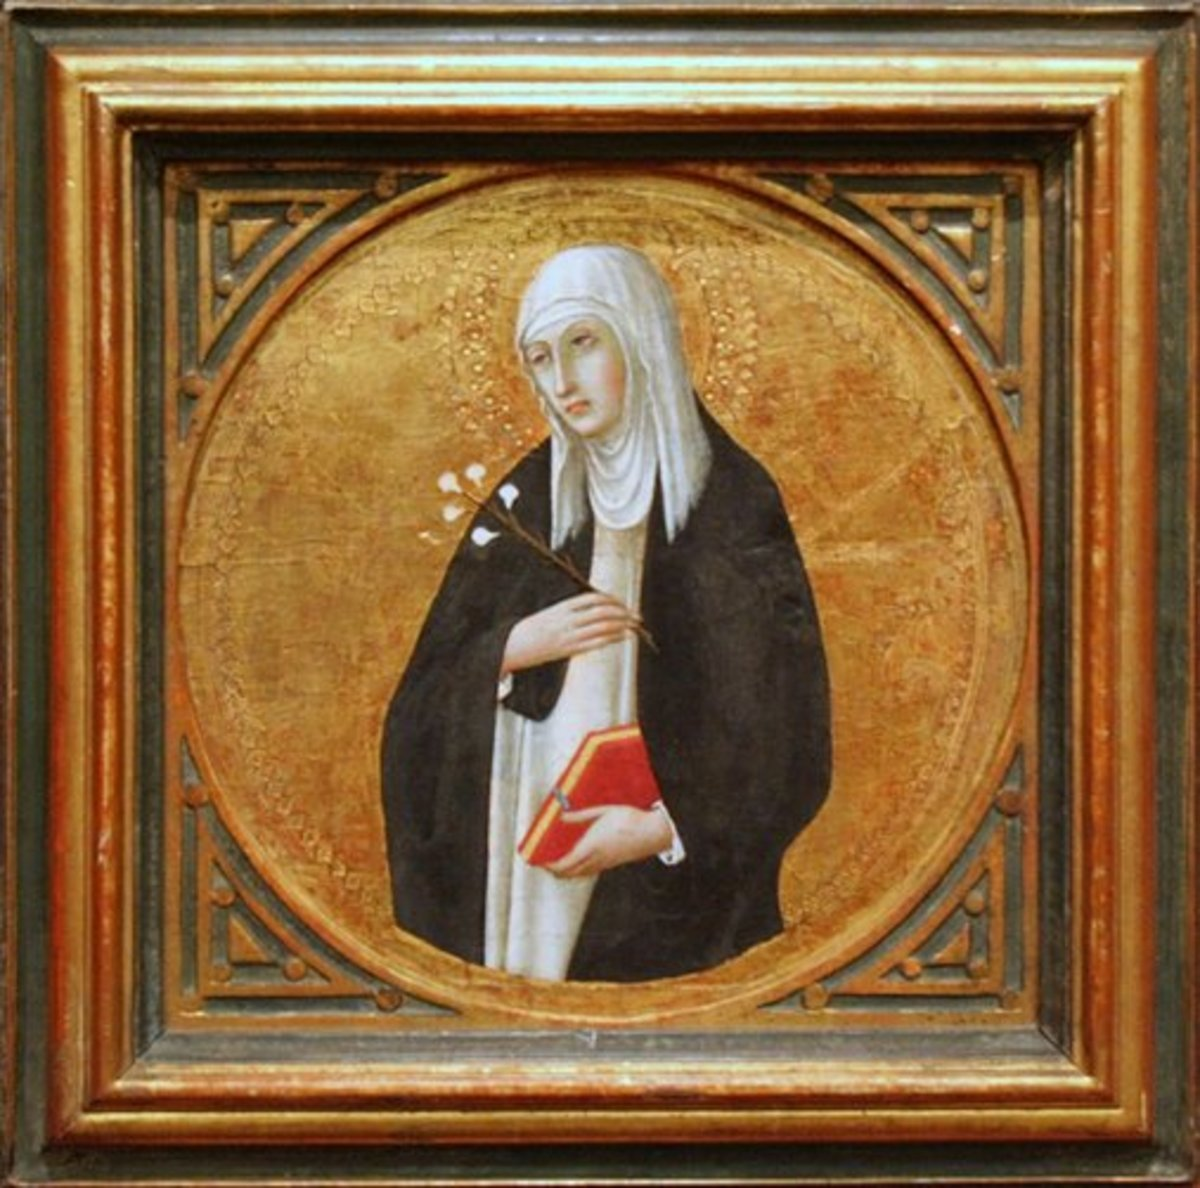 St. Catherine of Siena by Sano di Pietro